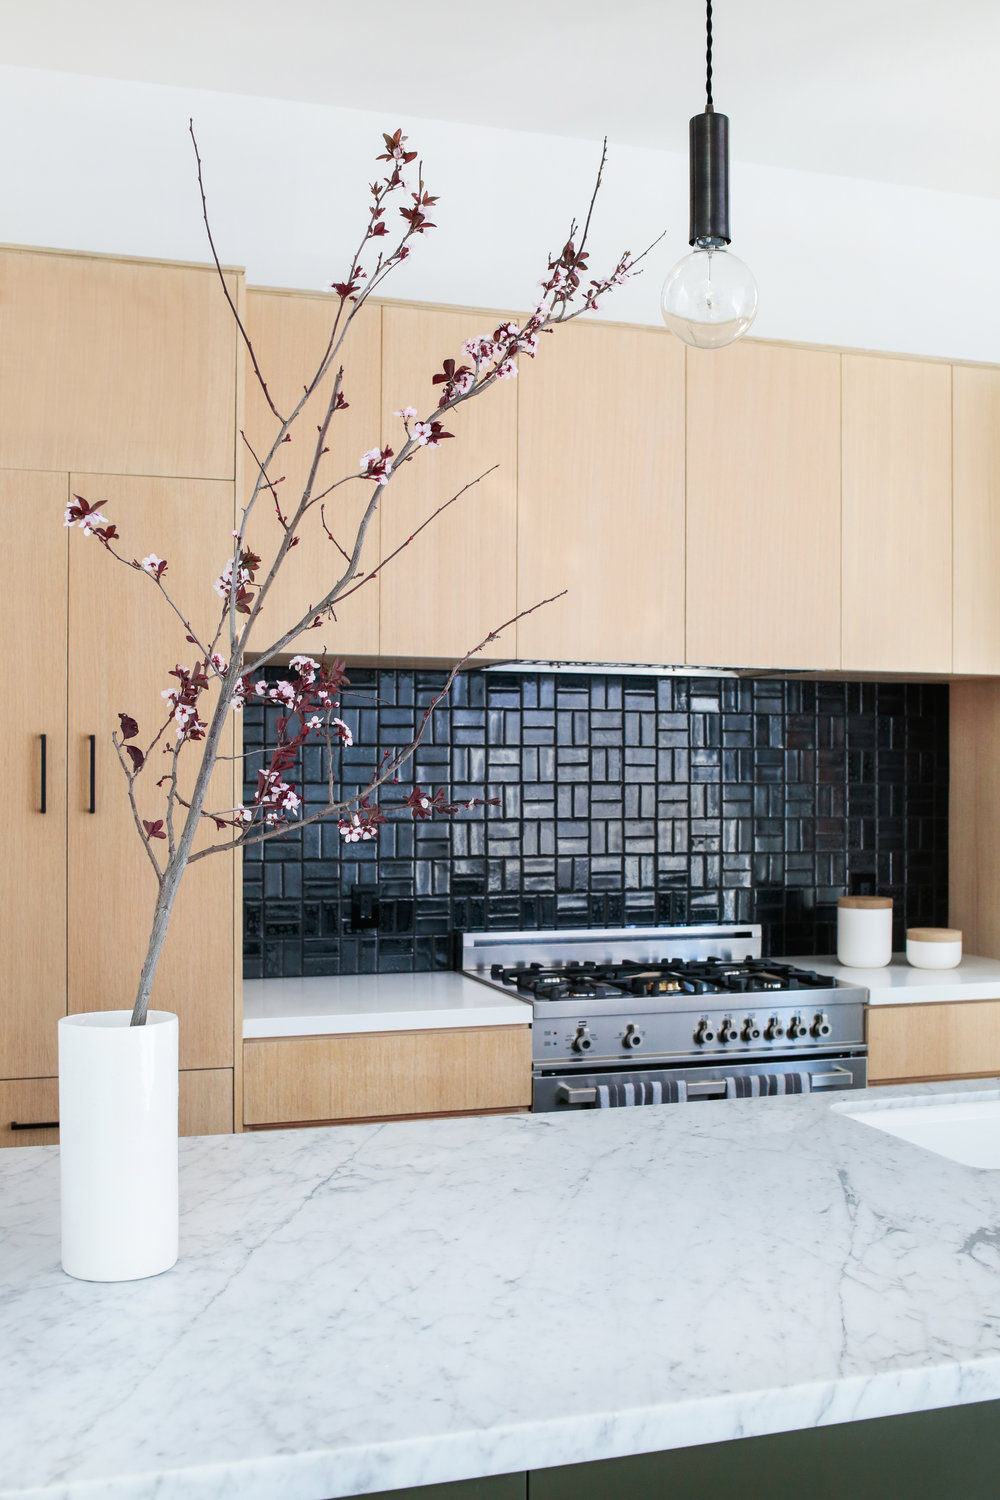 20 GORGEOUS KITCHENS WITH GLOSSY & REFLECTIVE TILES - Get creative with your backsplash. BY BRITTANY COST